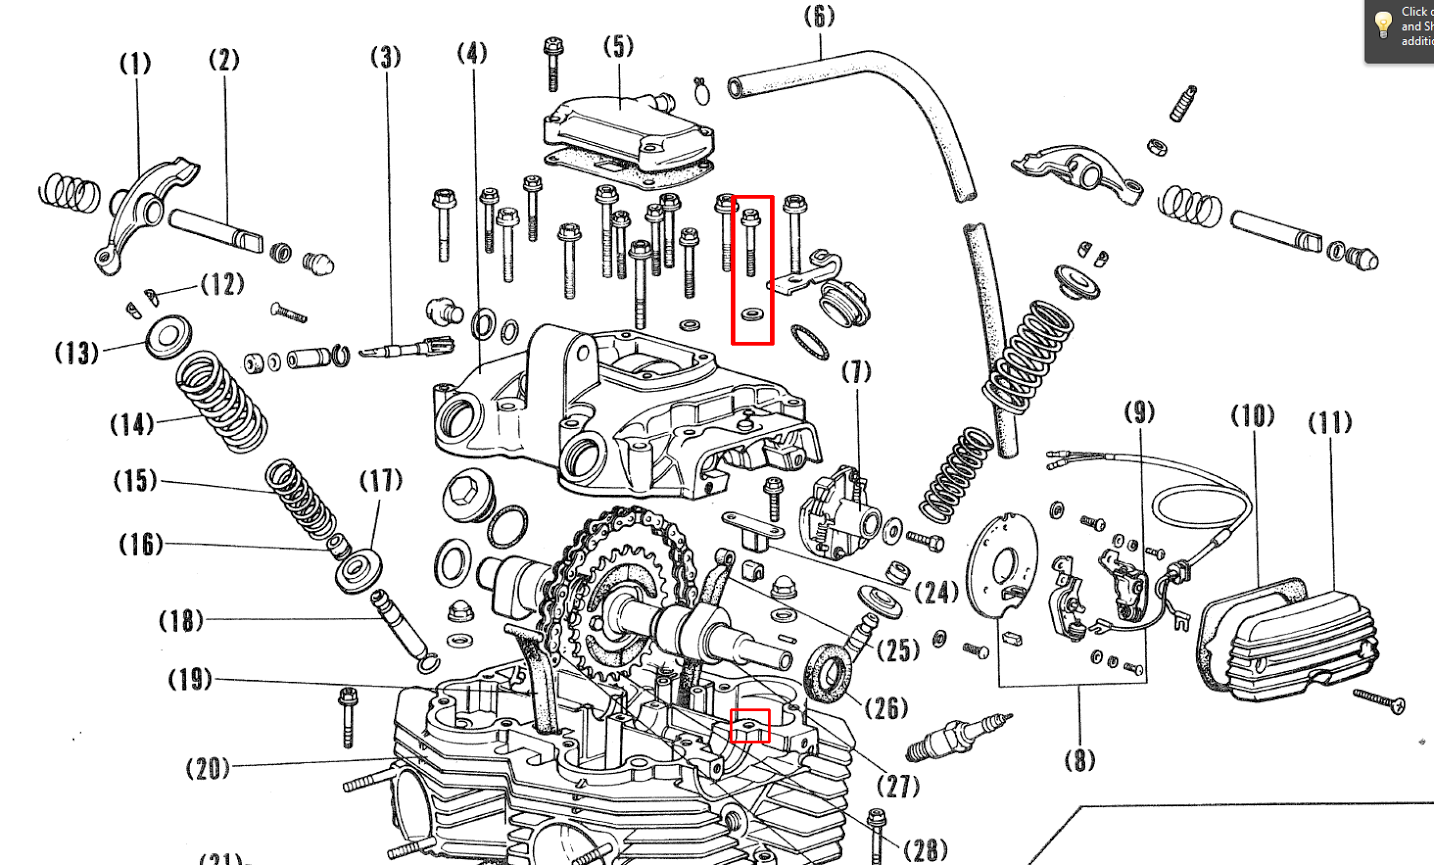 2005 honda 300ex engine diagram just bought a 360 (cam chain tensioner and tuning questions)